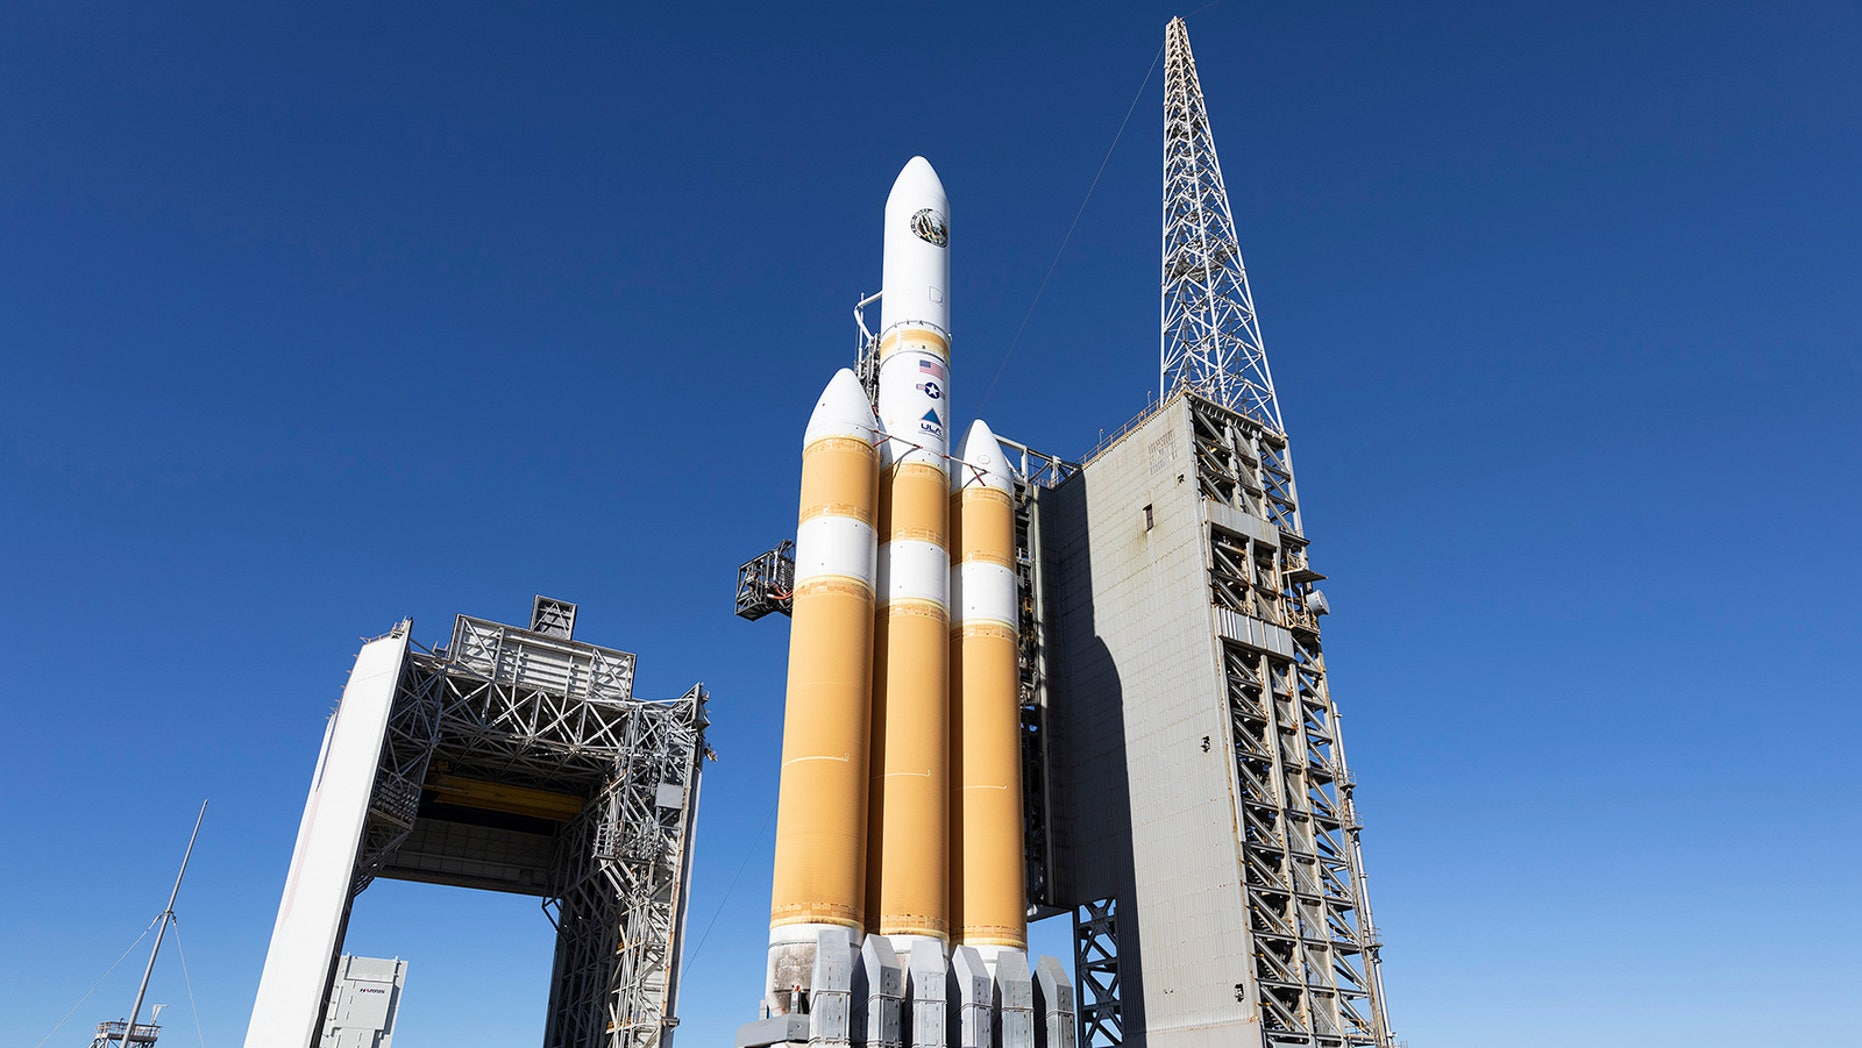 The mobile service tower rolls back from the United Launch Alliance (ULA) Delta IV Heavy rocket carrying NRO's NROL-71 mission in preparation for launch from Space Launch Complex 6 at Vandenberg Air Force Base in California. Liftoff is targeted for Jan. 19, 2018.